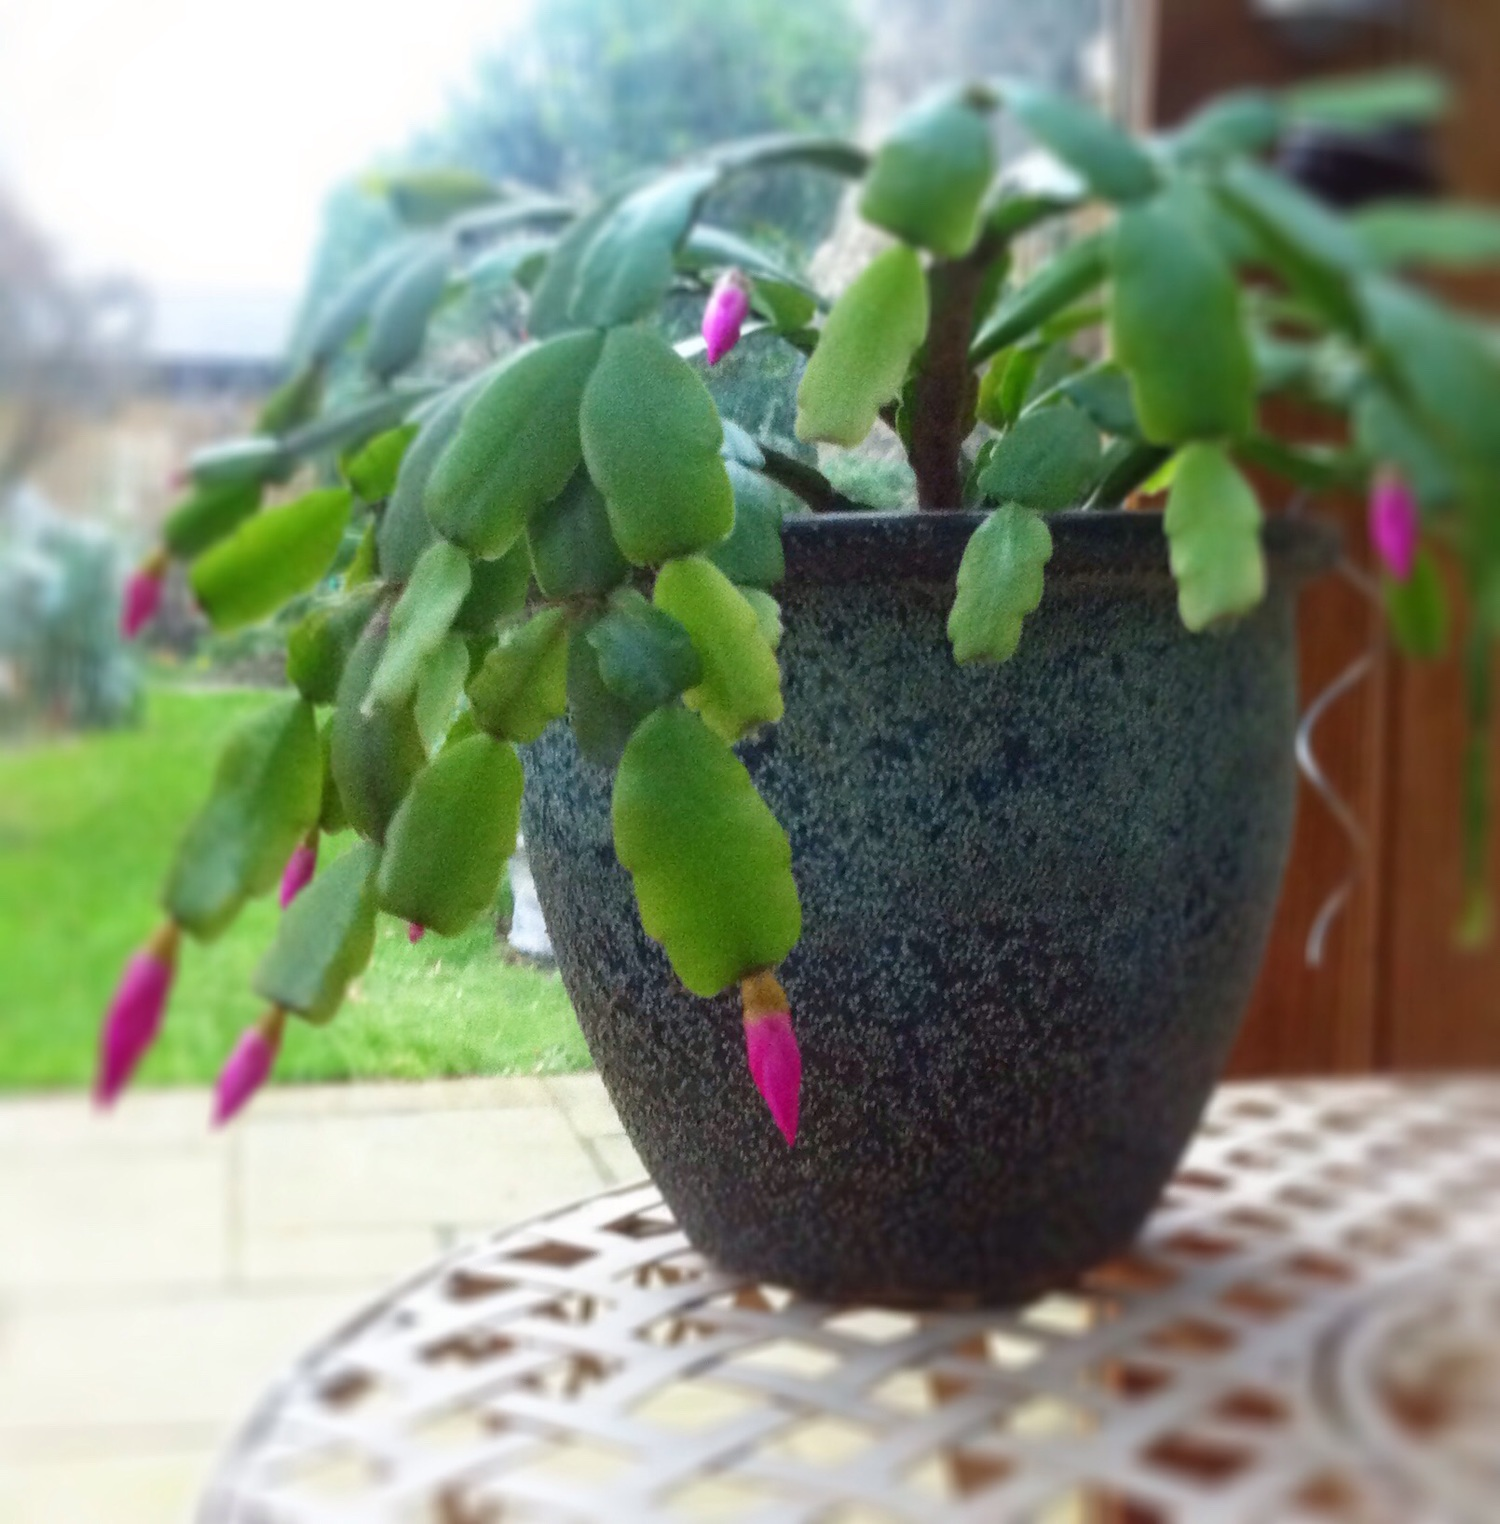 My Schlumbergera and other houseplants